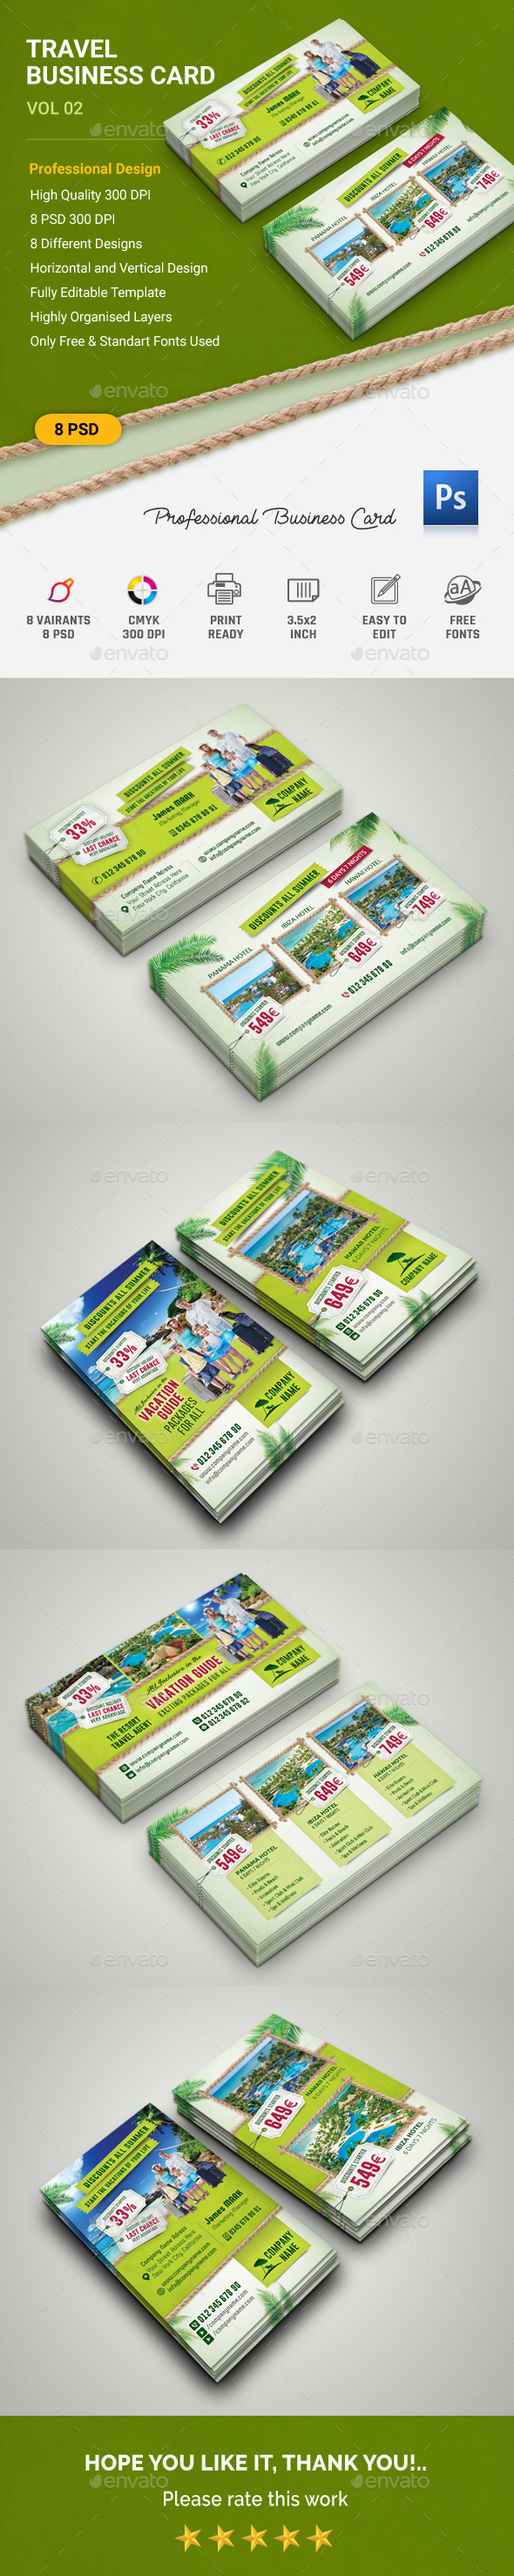 Travel Business Card - Business Cards Print Templates